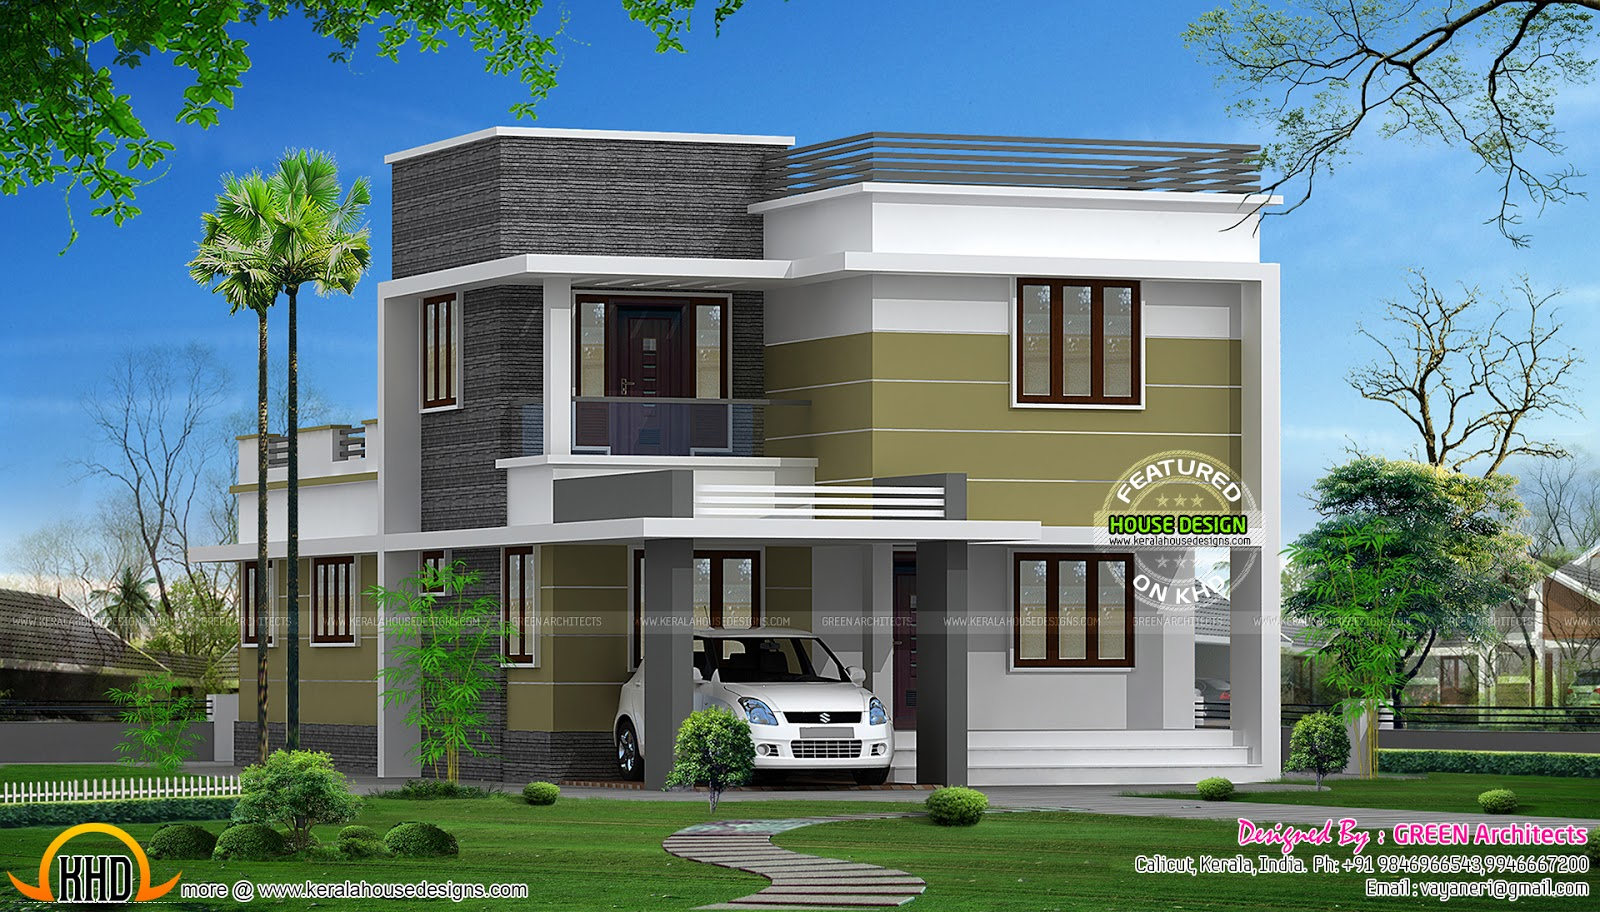 186 sq m small double storied house in kerala kerala for Small house design for bangladesh